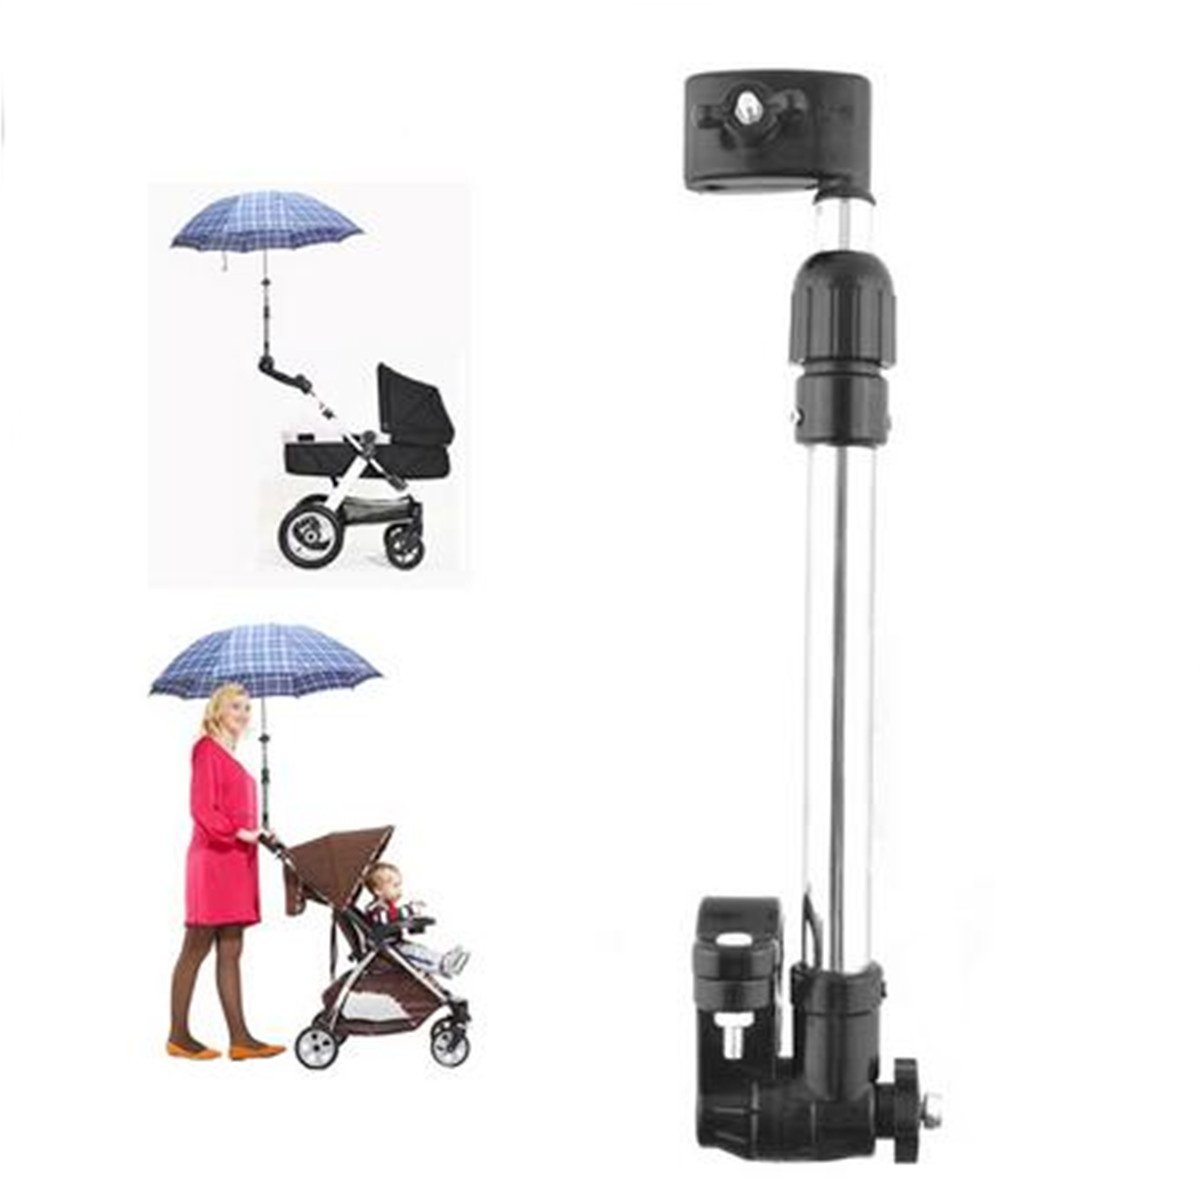 Yosoo Portable Adjustable Baby Stroller Pram Bicycle Chair Umbrella Bar Stand Holder Mount Stand Bracket Connector Accessories Cycling Bicycle Wheelchair